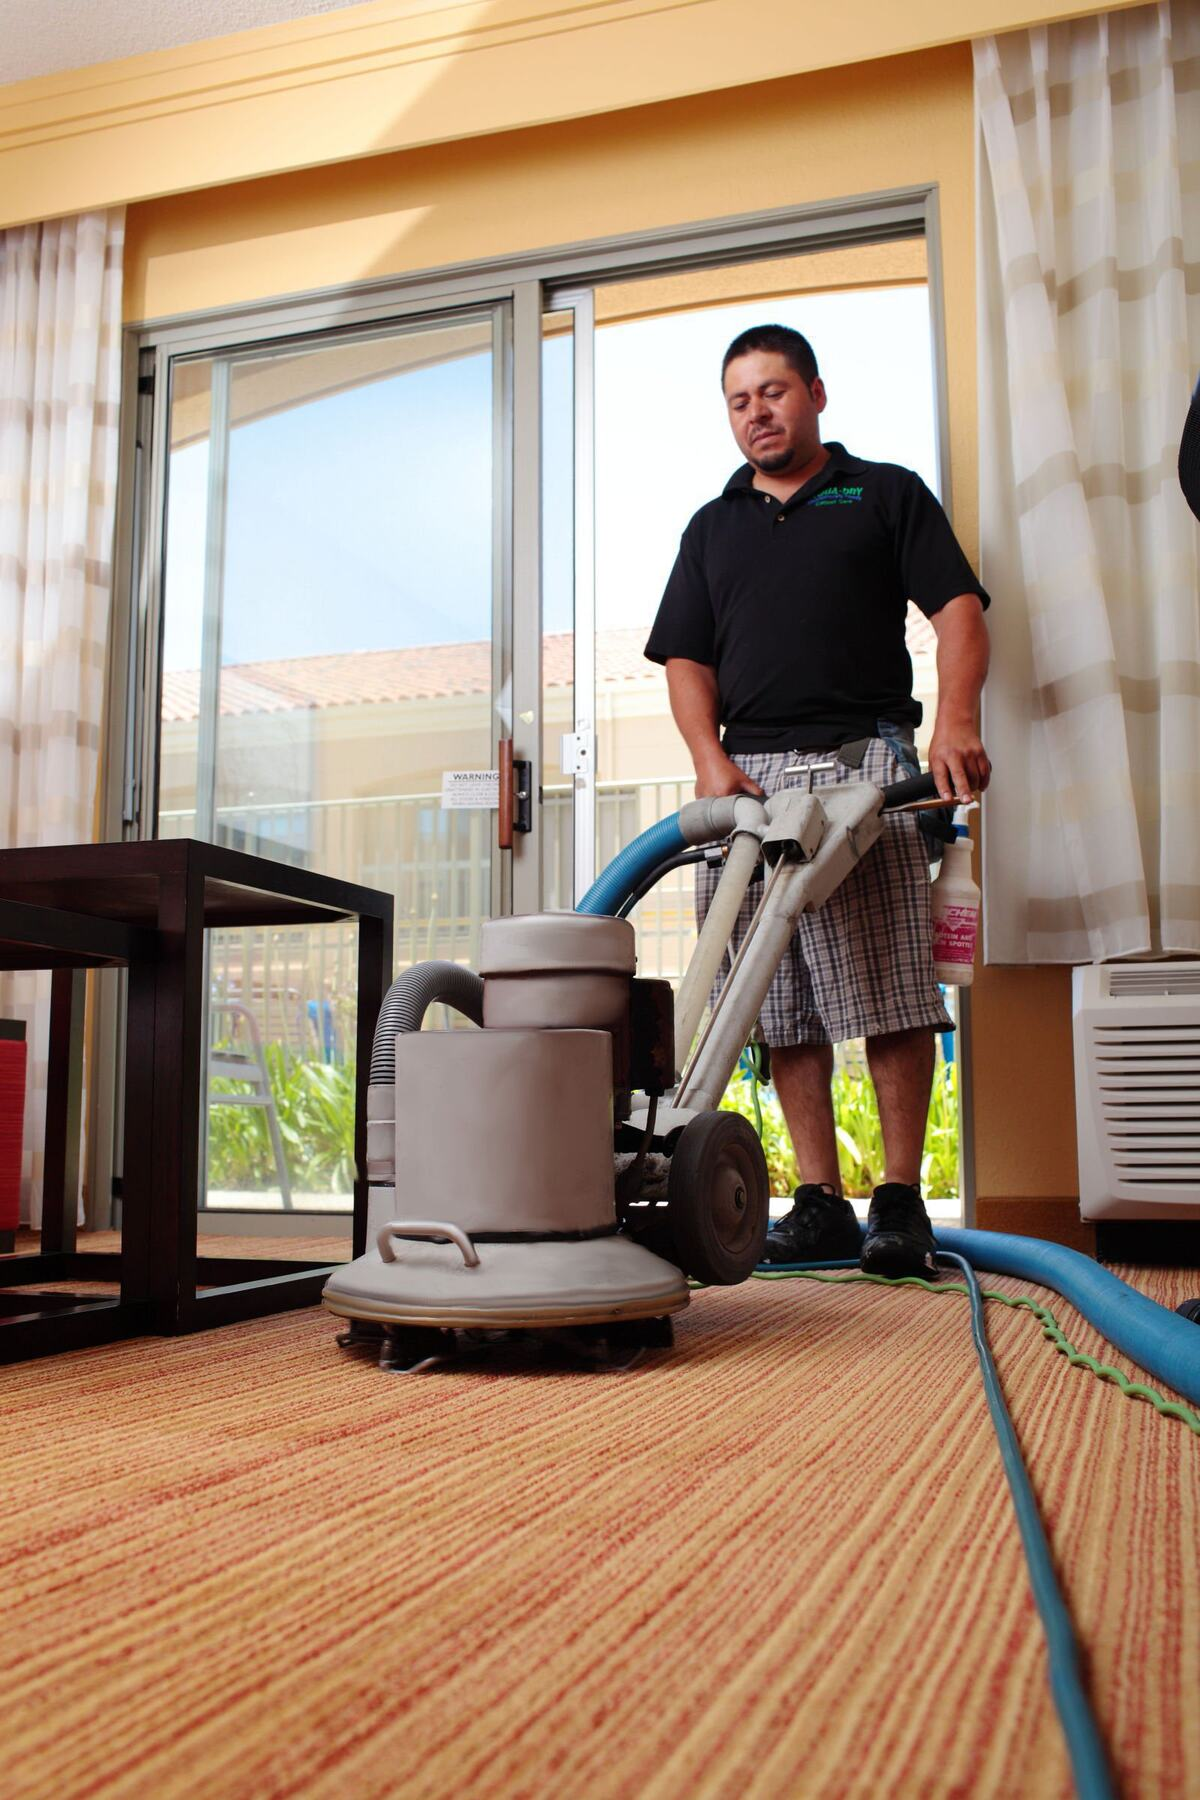 Professional Carpet Cleaning, Hotel Room